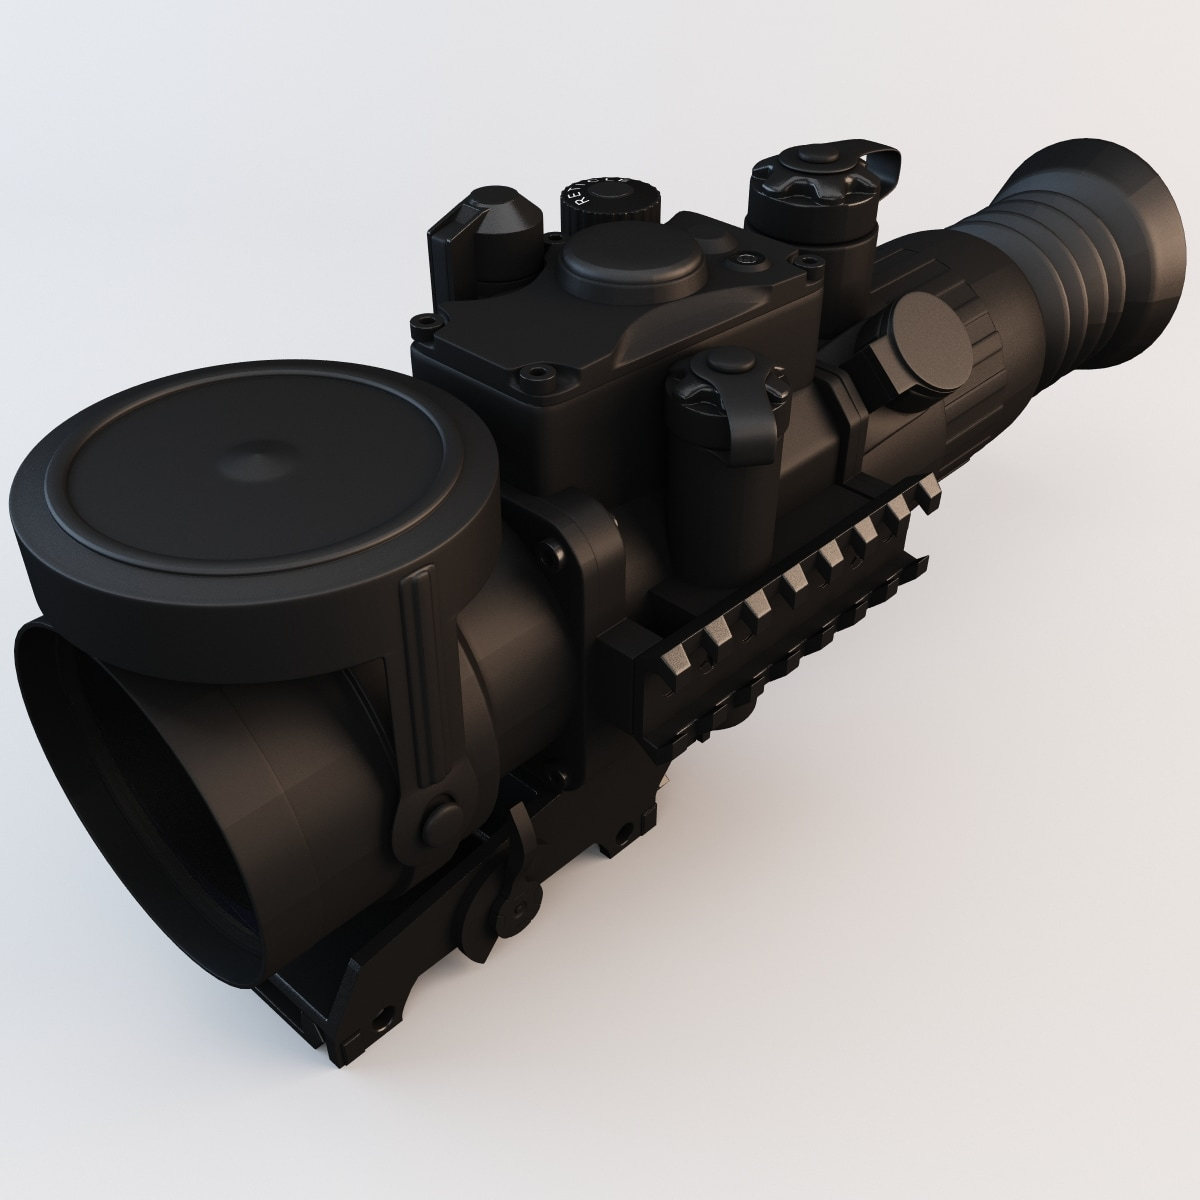 Night_Vision_Rifle_Scope_Yukon_Phantom_4x60_002.jpg